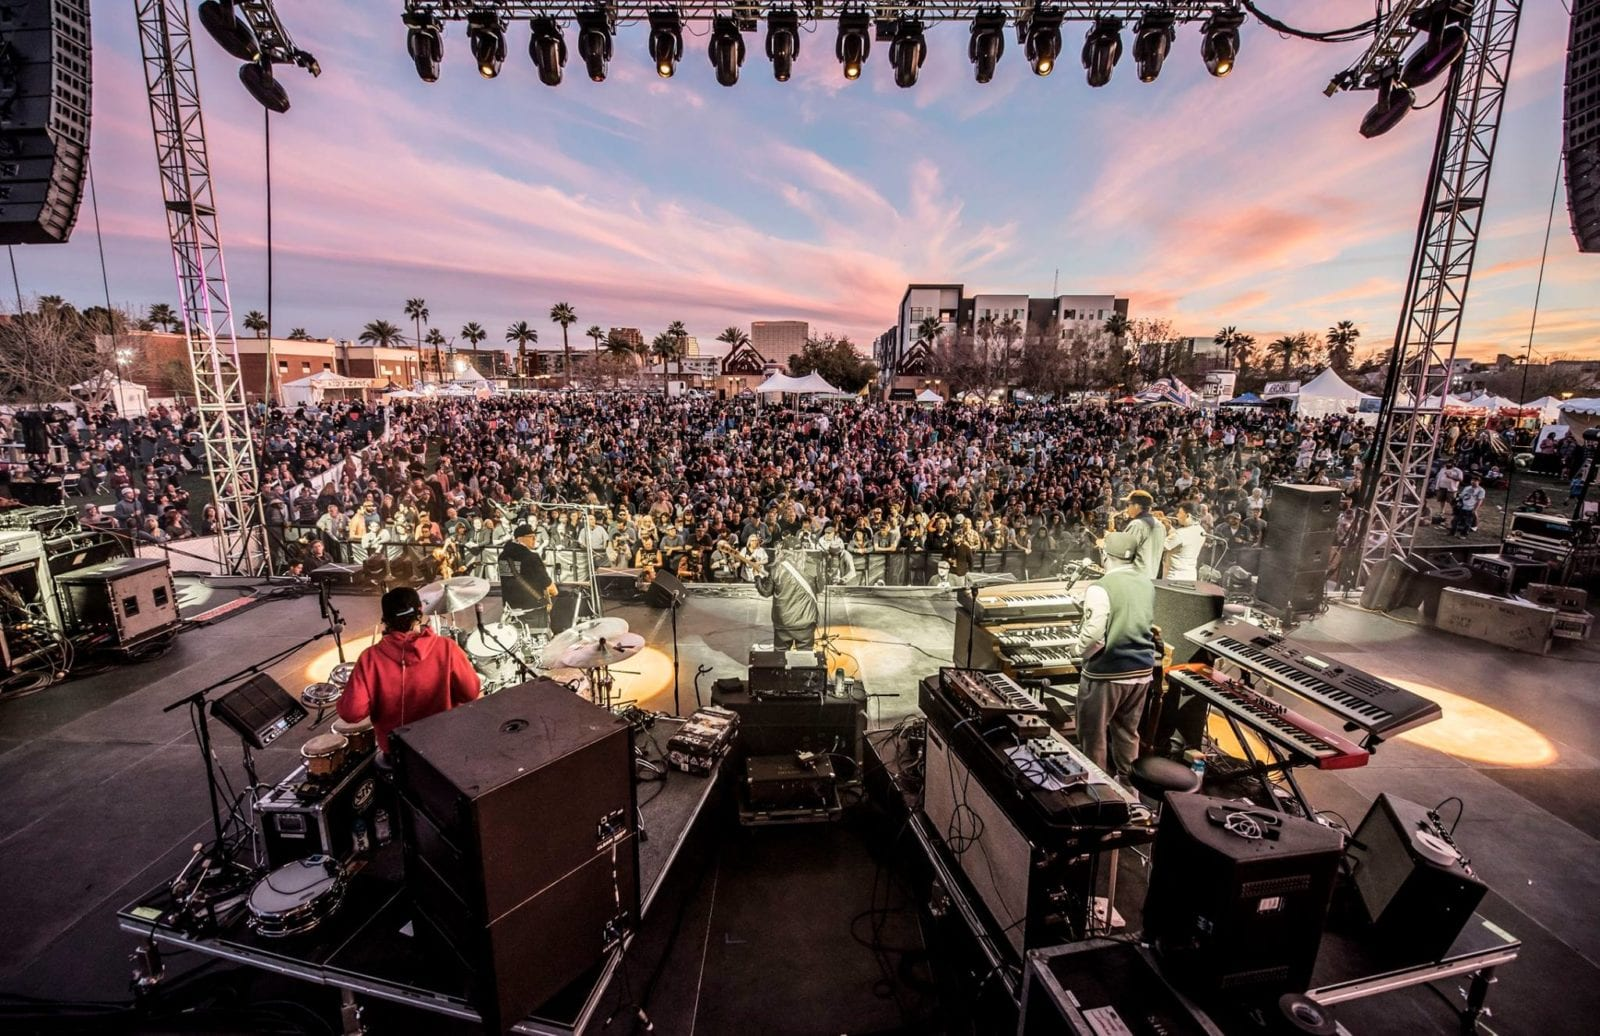 It may be late spring everywhere else in the United States, but March is like summertime down in Arizona and McDowell Mountain Music Festival (M3F Fest) takes full advantage of the warm weather.